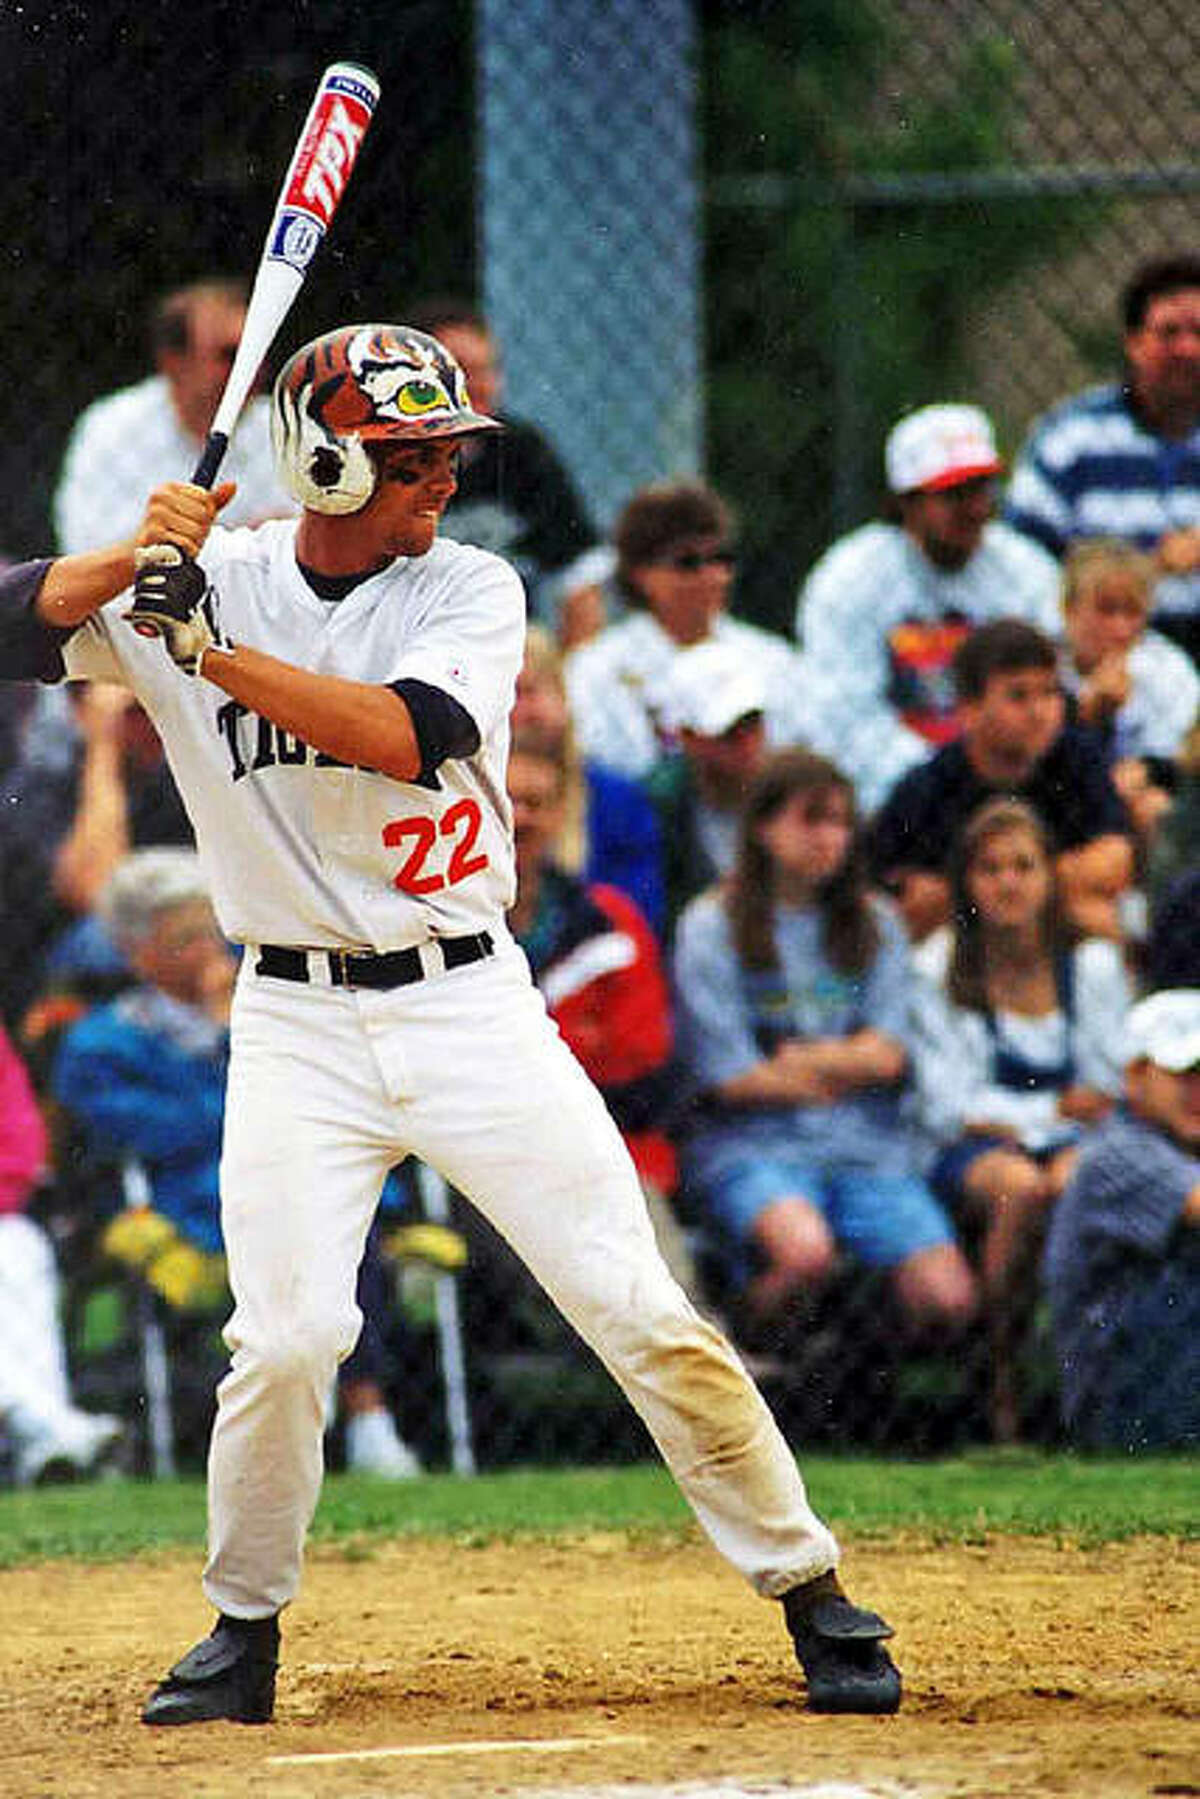 Edwardsville's Matt Evers waits for a pitch during his senior season in 1998.